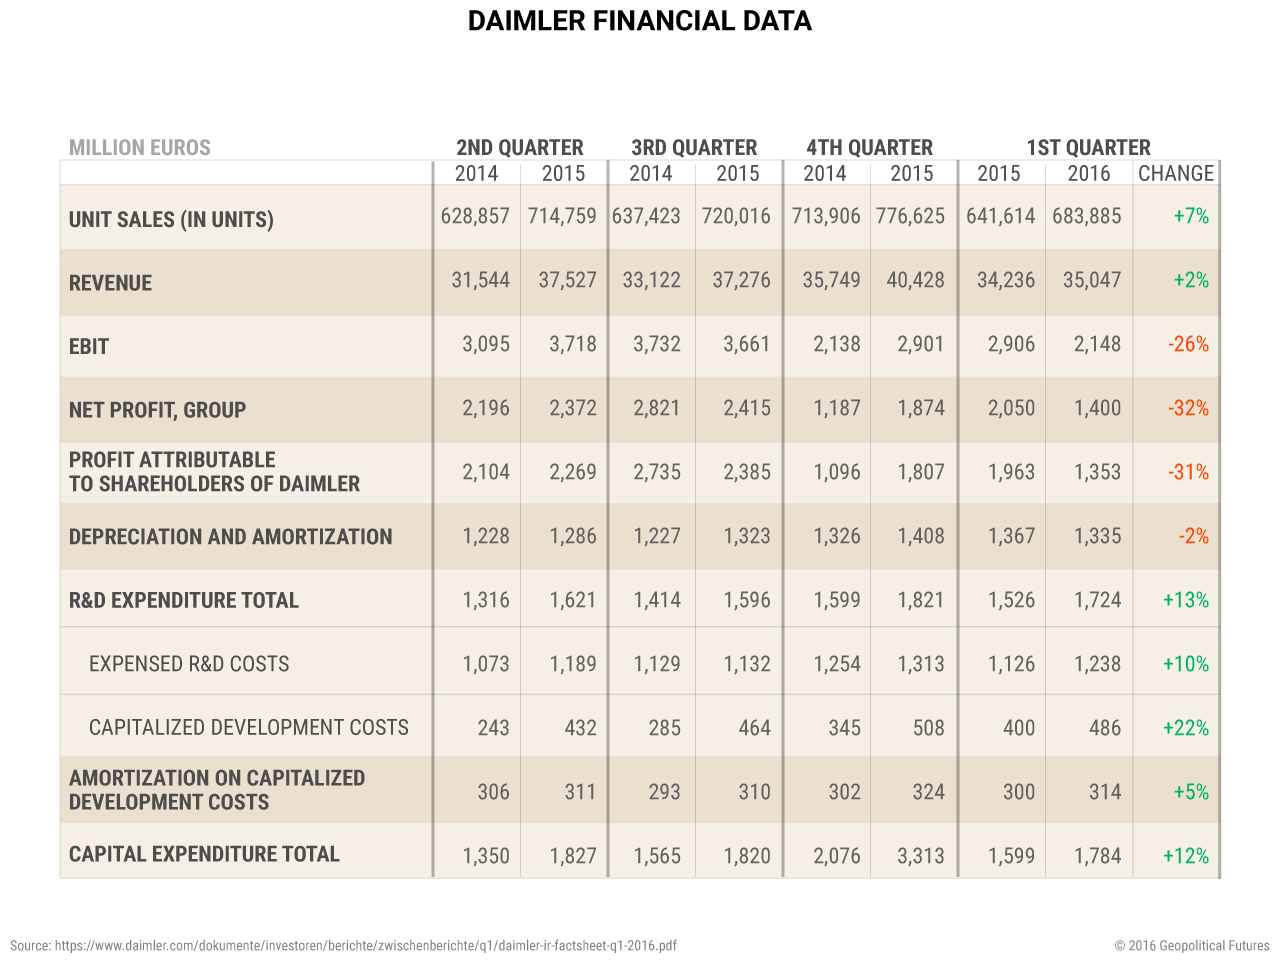 daimler-financial-data